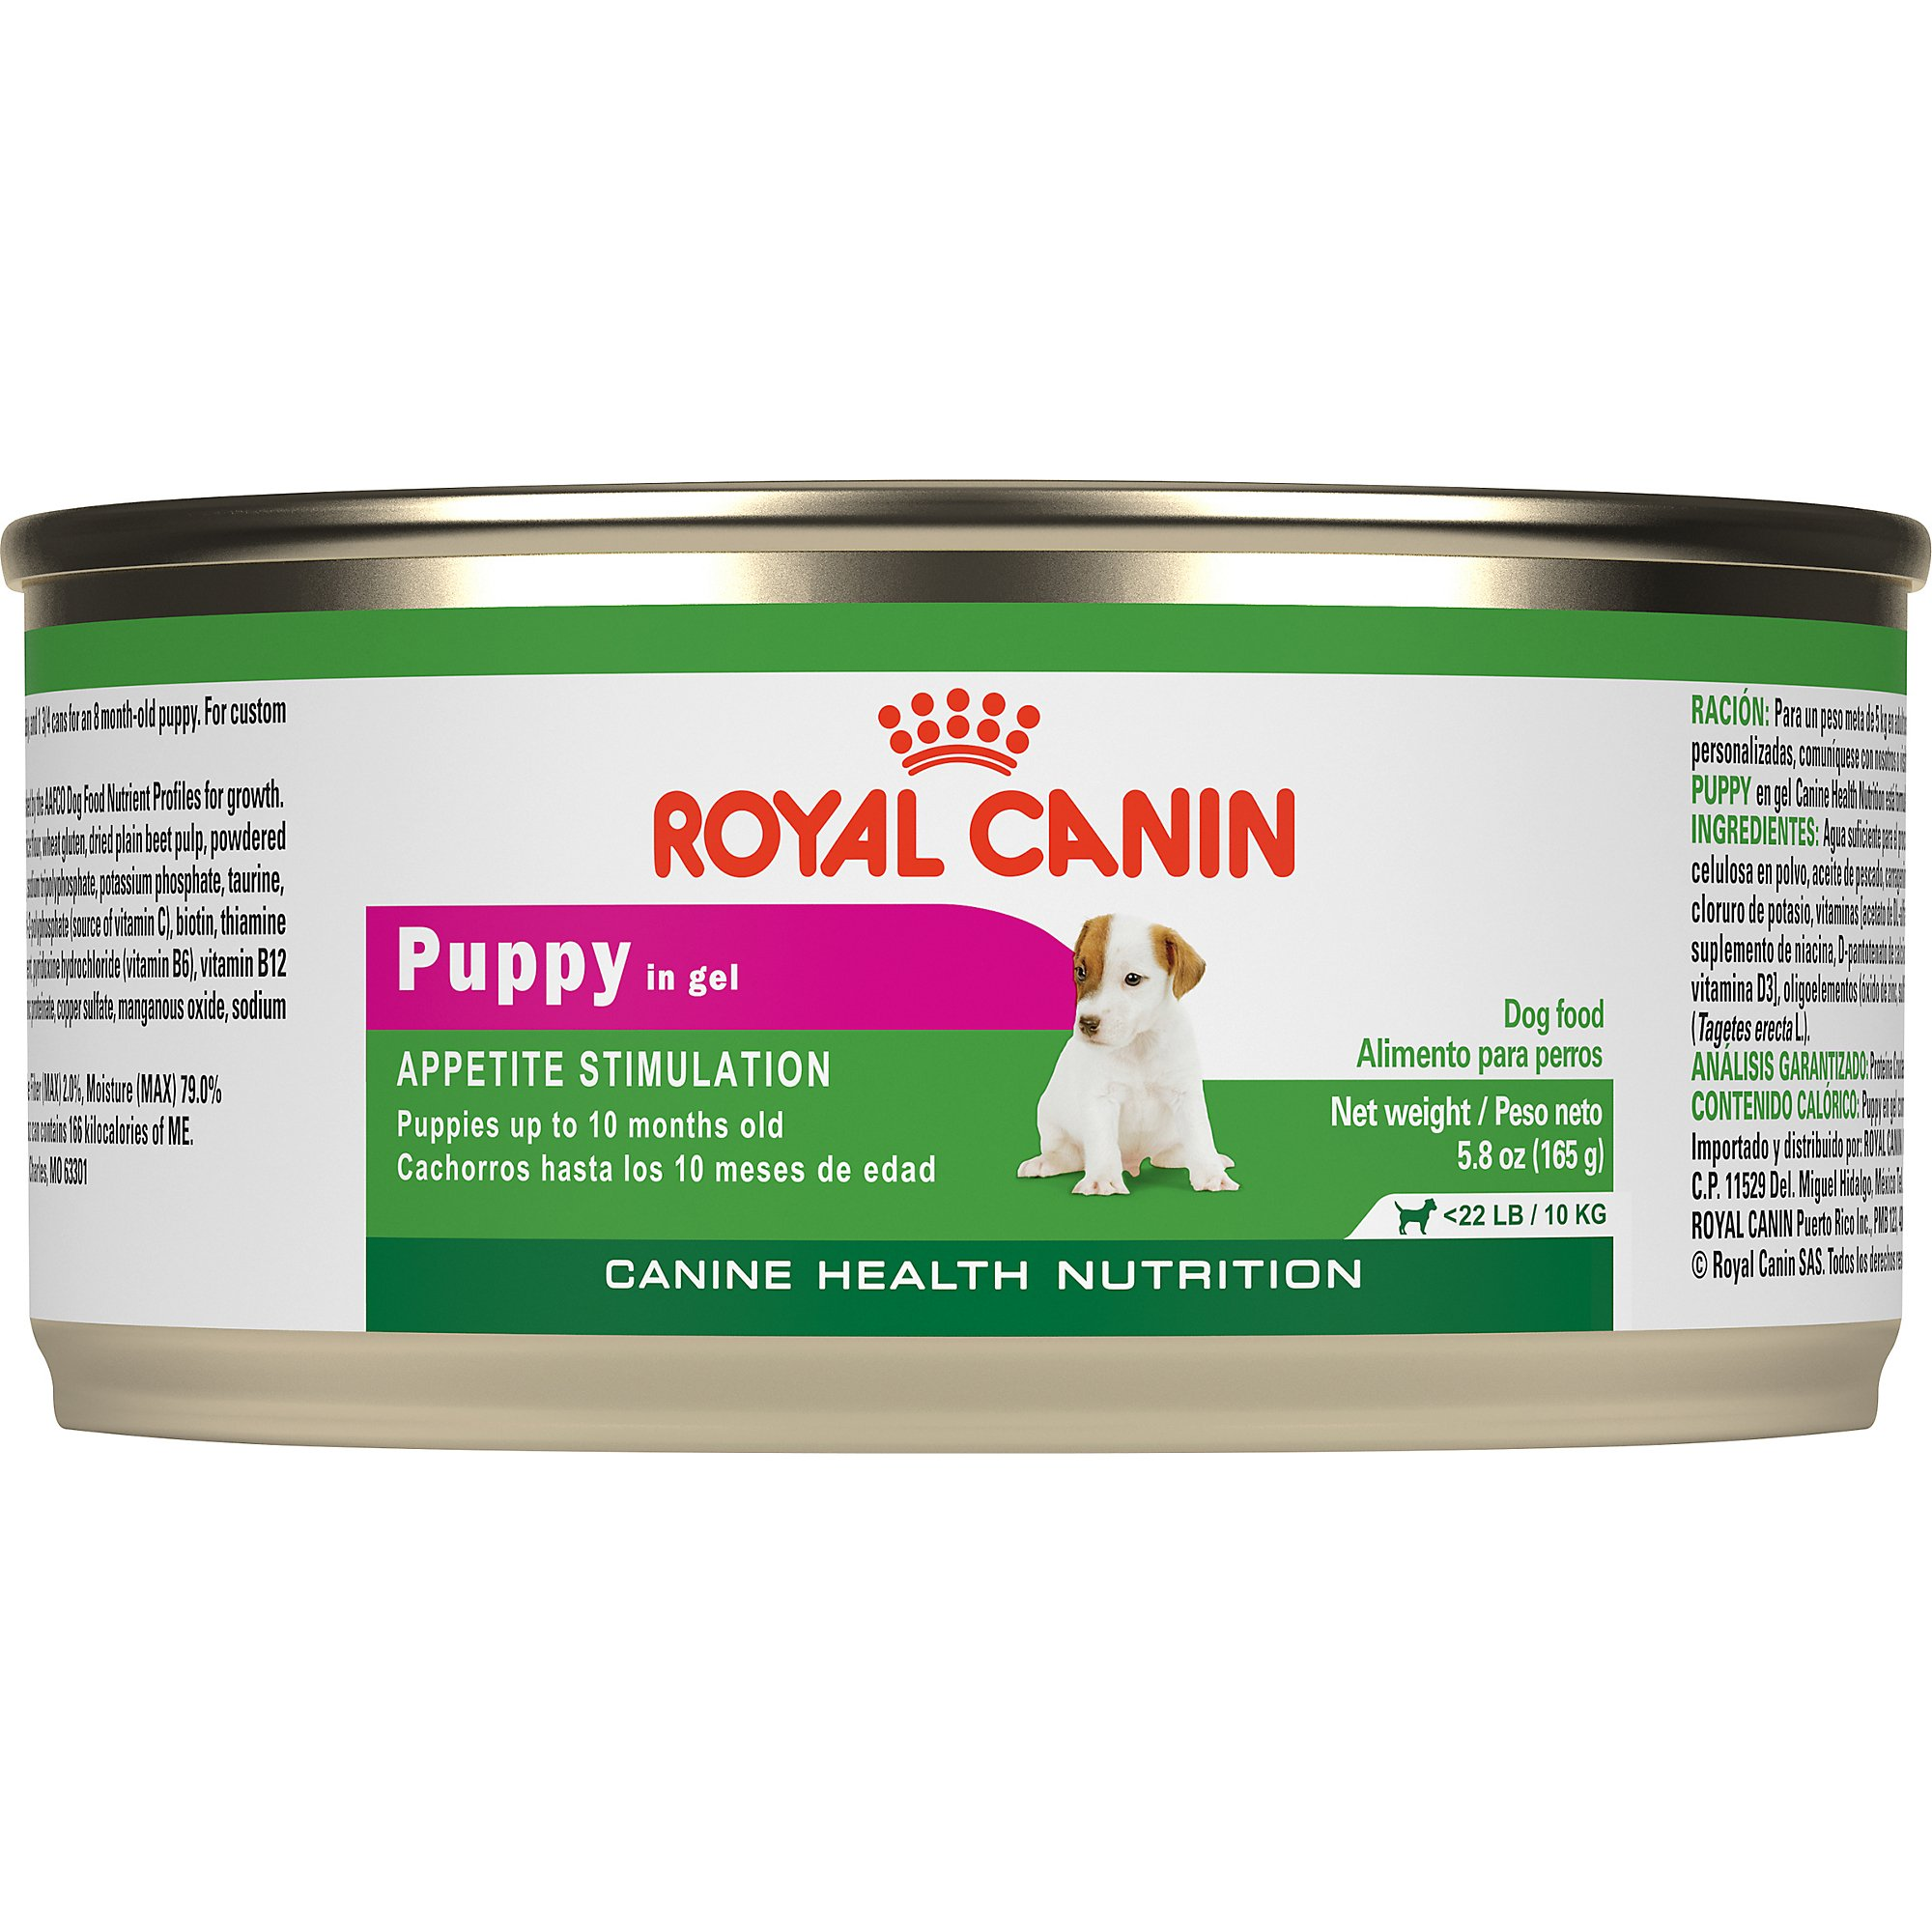 royal canin canine health nutrition canned puppy food petco store. Black Bedroom Furniture Sets. Home Design Ideas